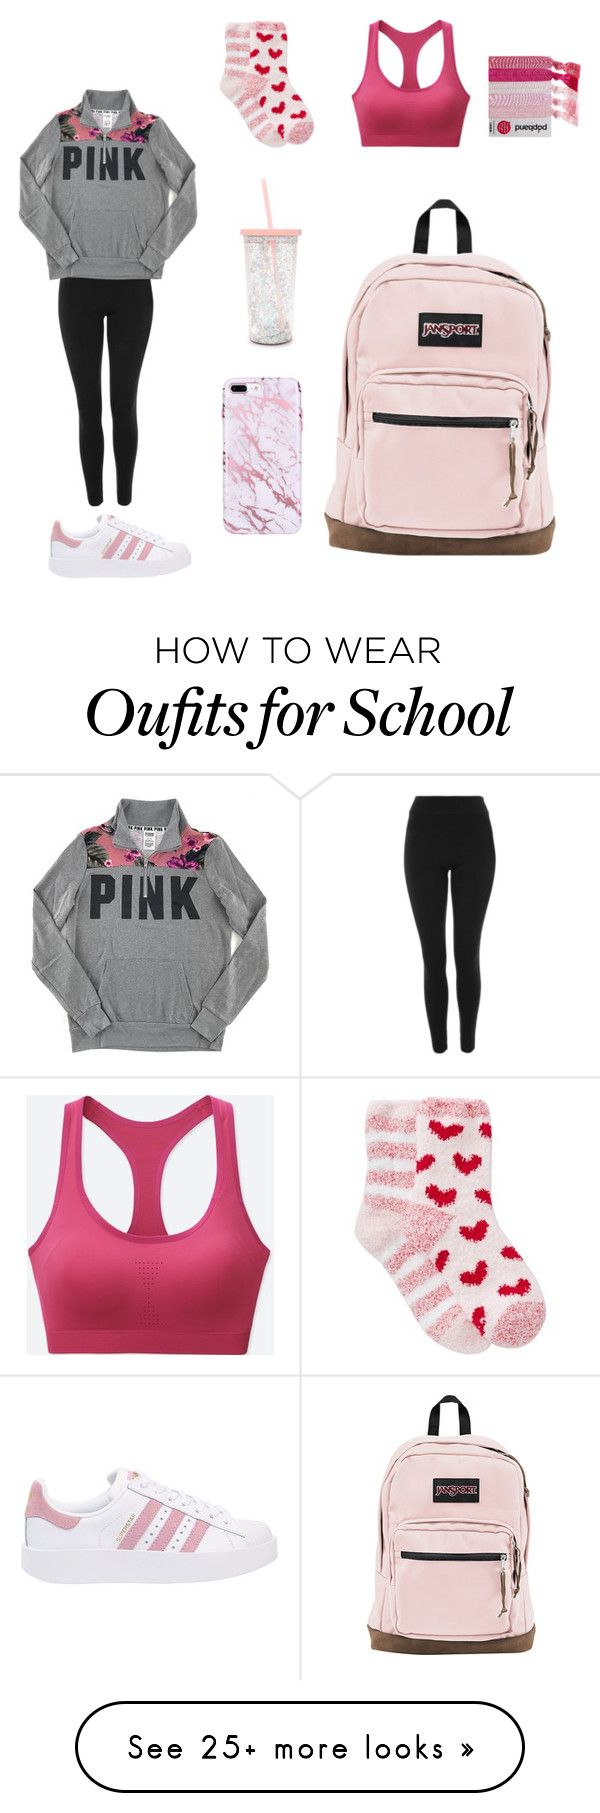 """Basic and Pink"" by awesomejpf on Polyvore featuring Topshop, Victoria's Secret PINK, Free Press, ban.do, adidas Originals, Uniqlo and JanSport"